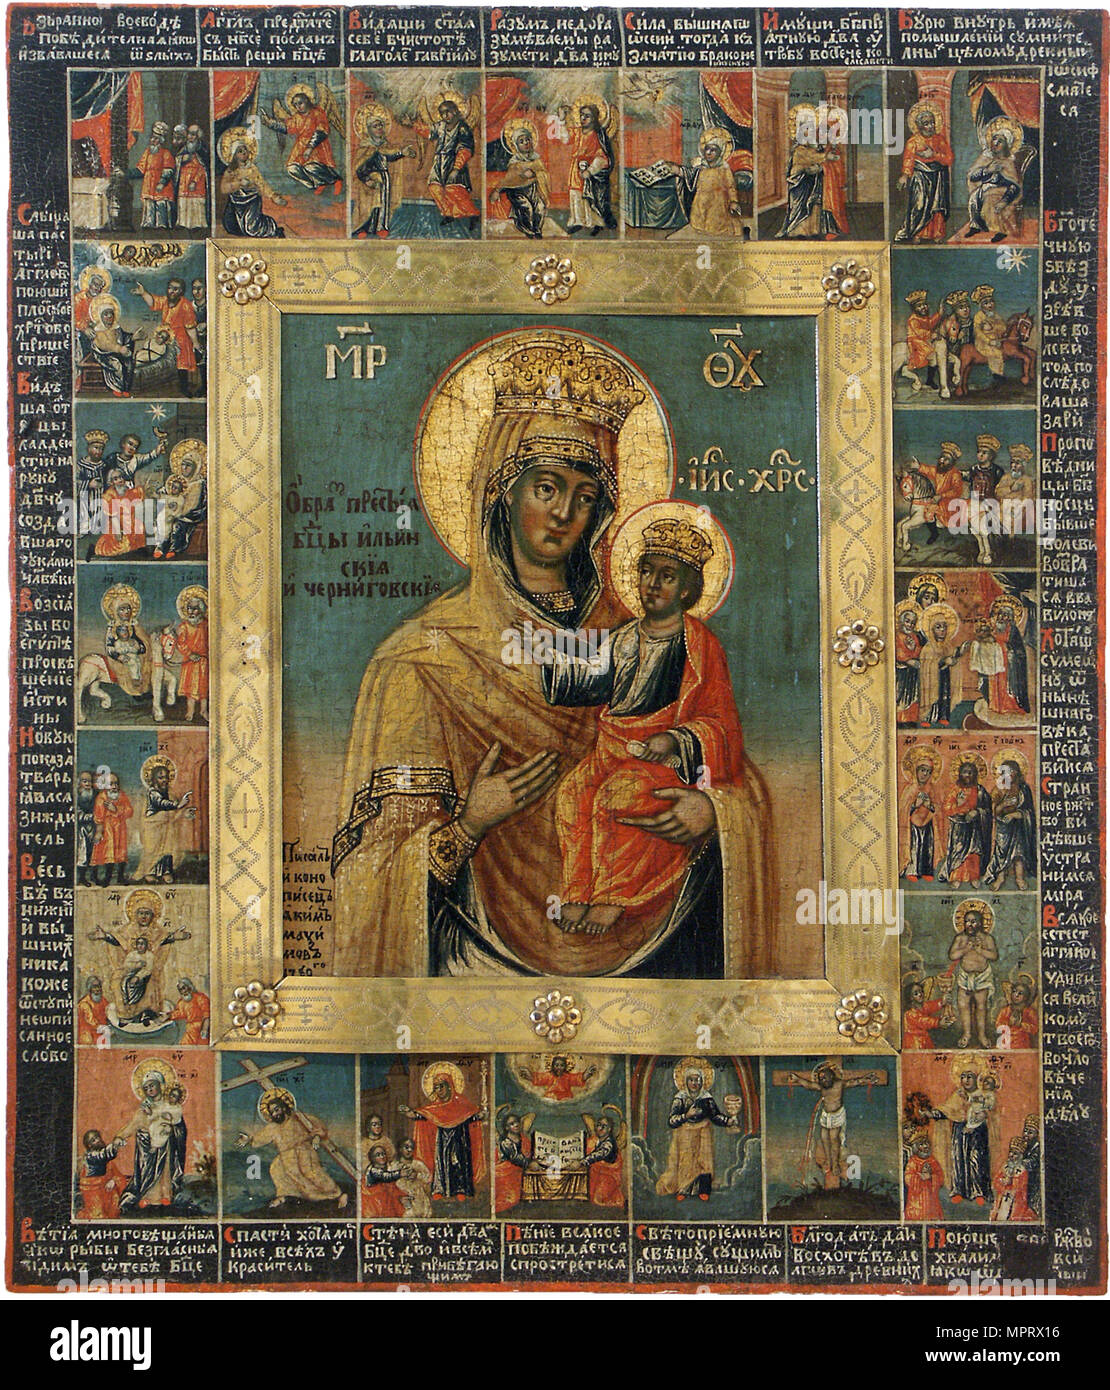 The Ilyin-Chernigov Icon of the Mother of God. - Stock Image